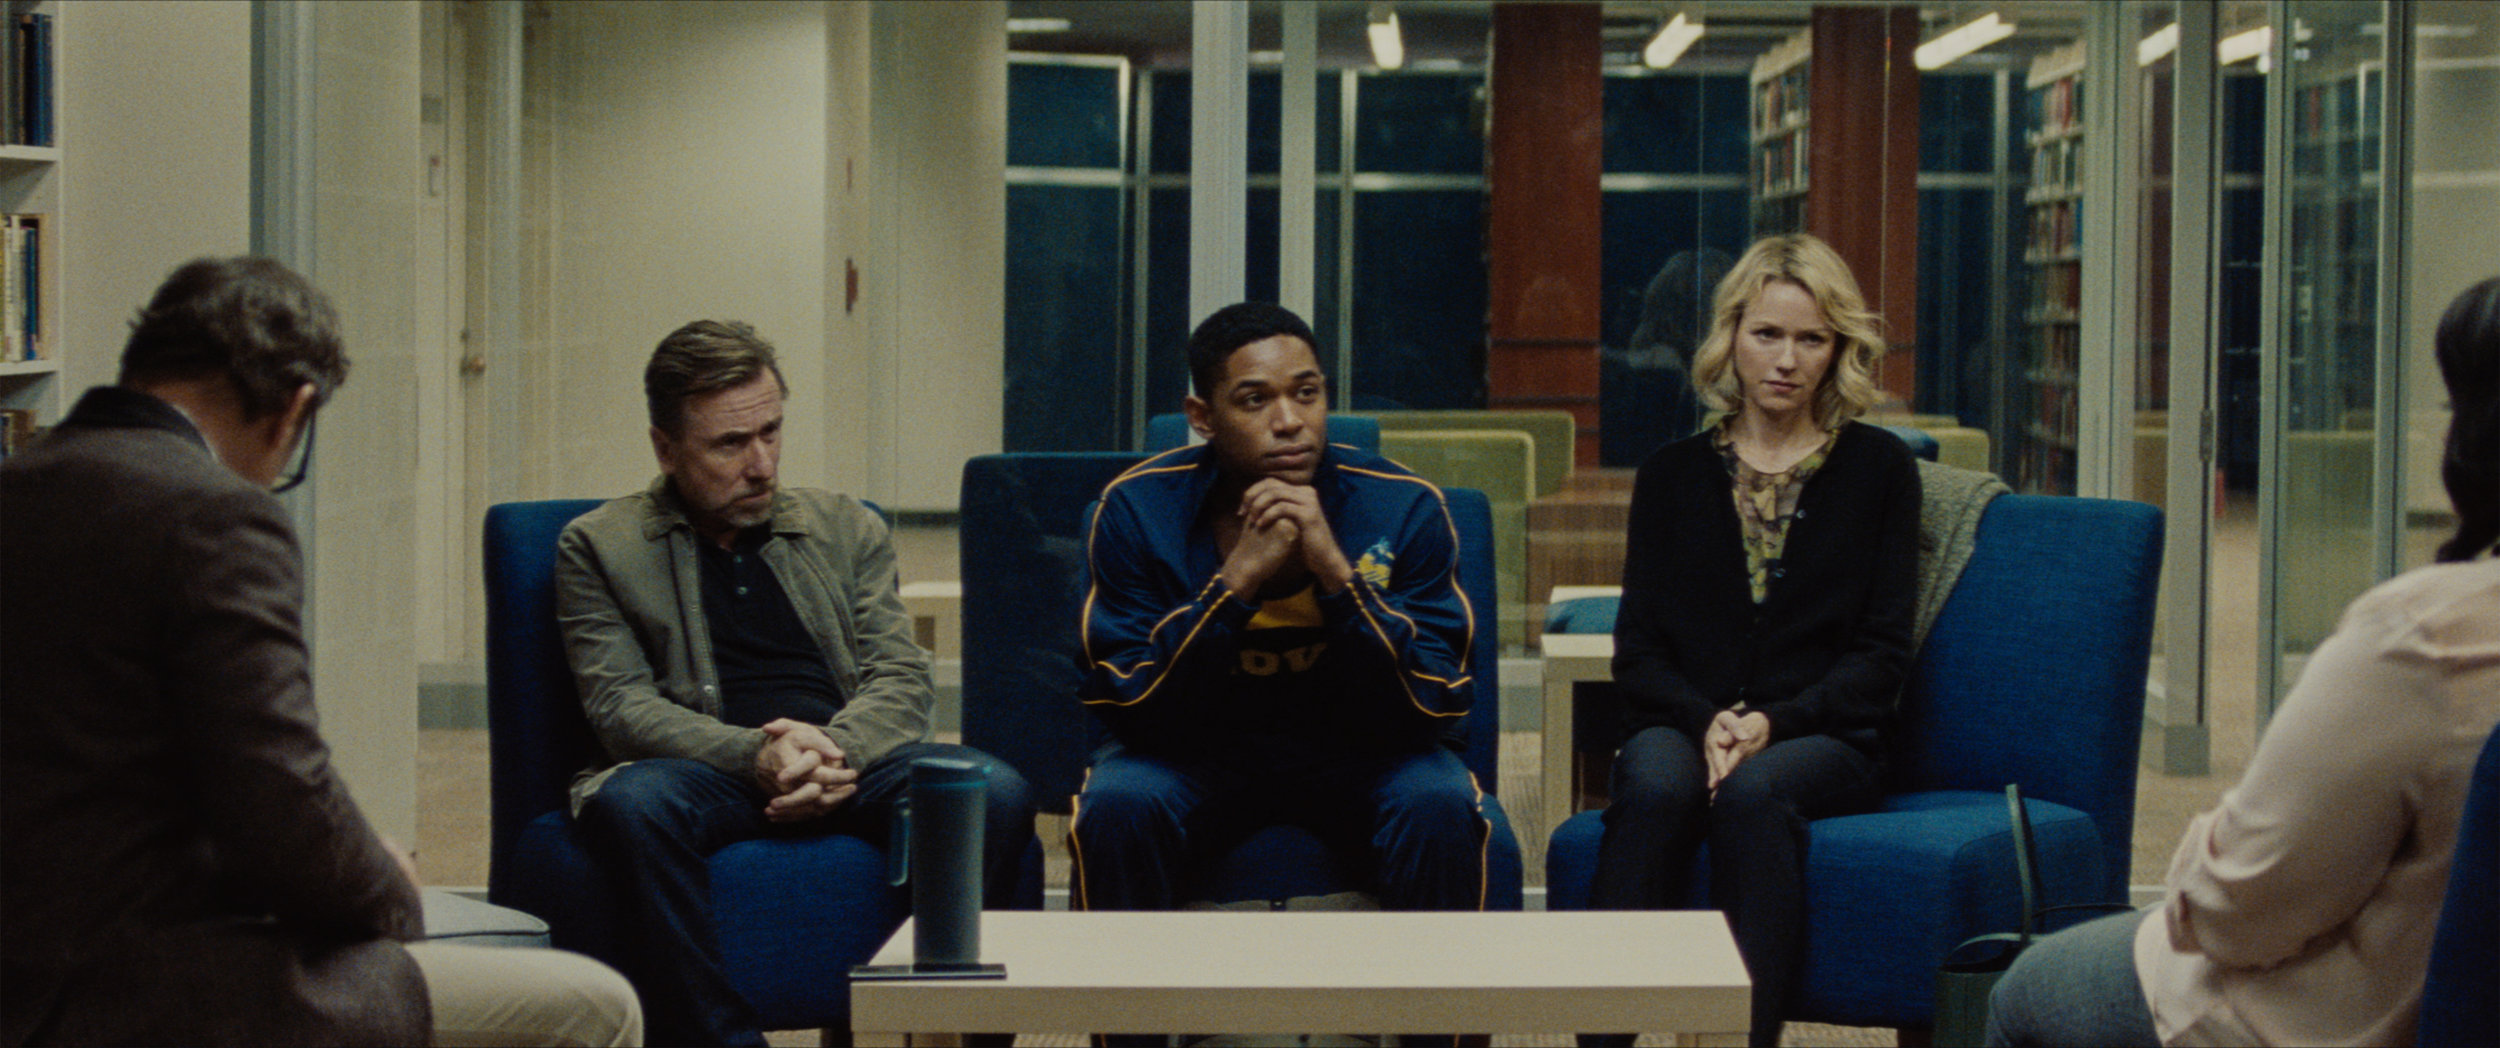 "An all-star athlete (Kelvin Harrison Jr., center) and his parents (Tim Roth and Naomi Watts) are called in after an alarming discovery is made about the student, in ""Luce,"" directed by Julius Onah. (Photo by (Larkin Seiple, courtesy of Neon Films.)"